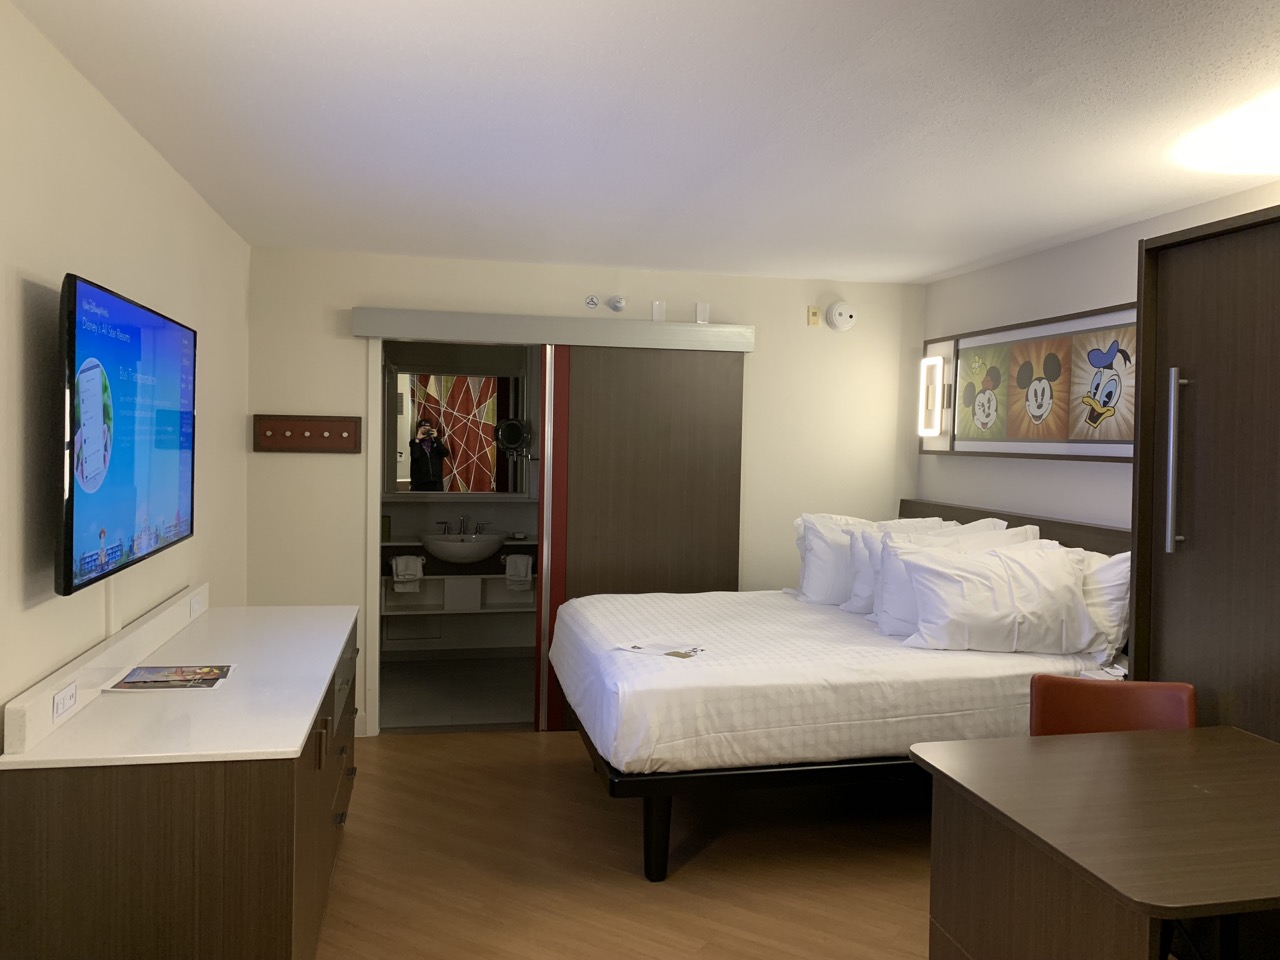 disney world best value resort hotels ranked 03 movies room.jpeg